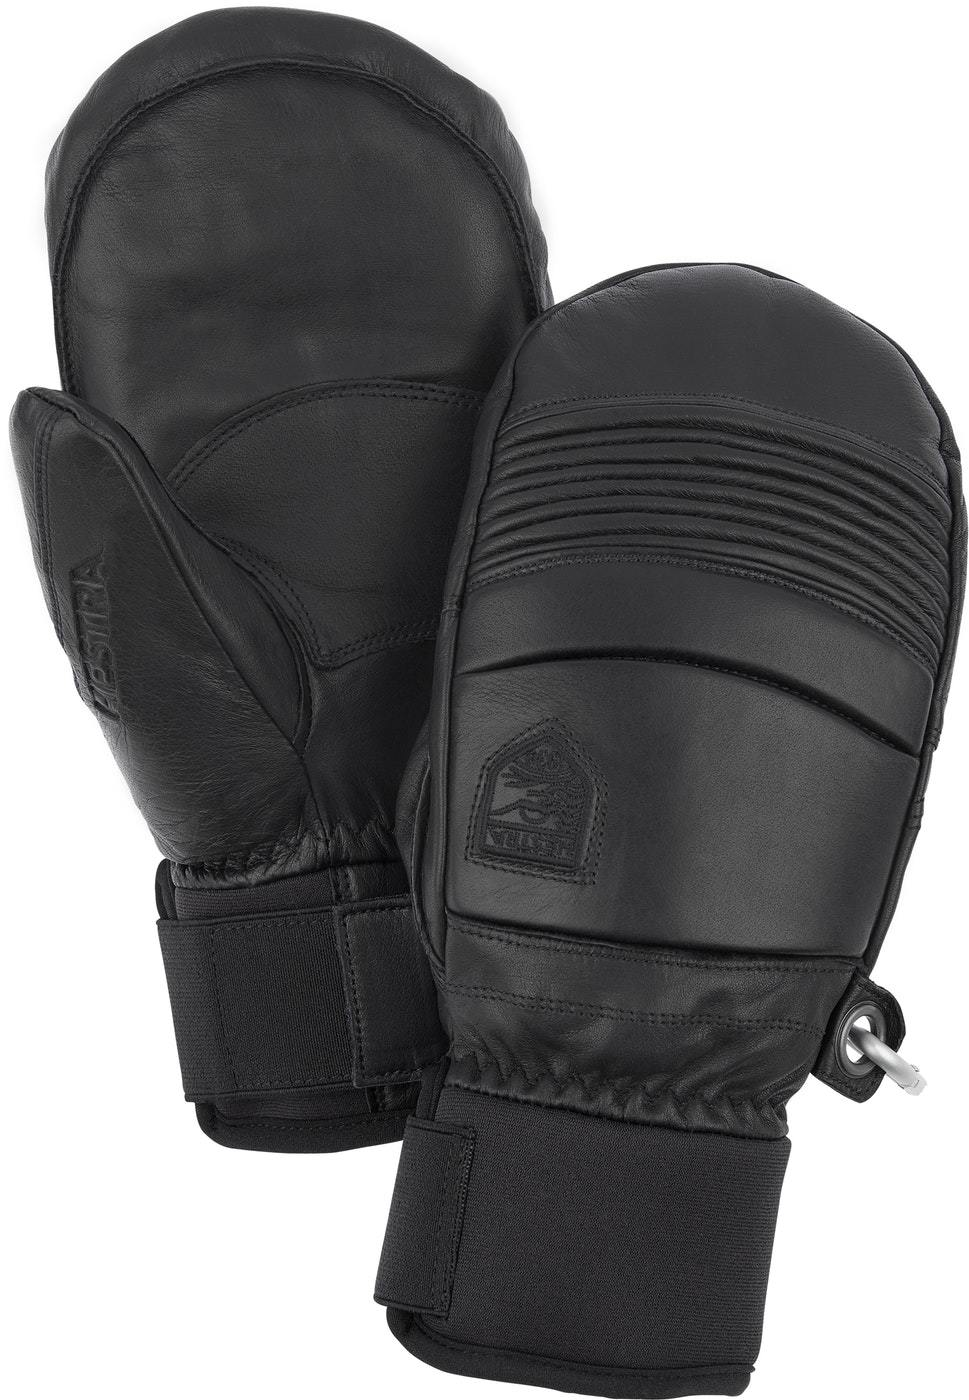 Leather Fall LIne Mitt - 31471-100